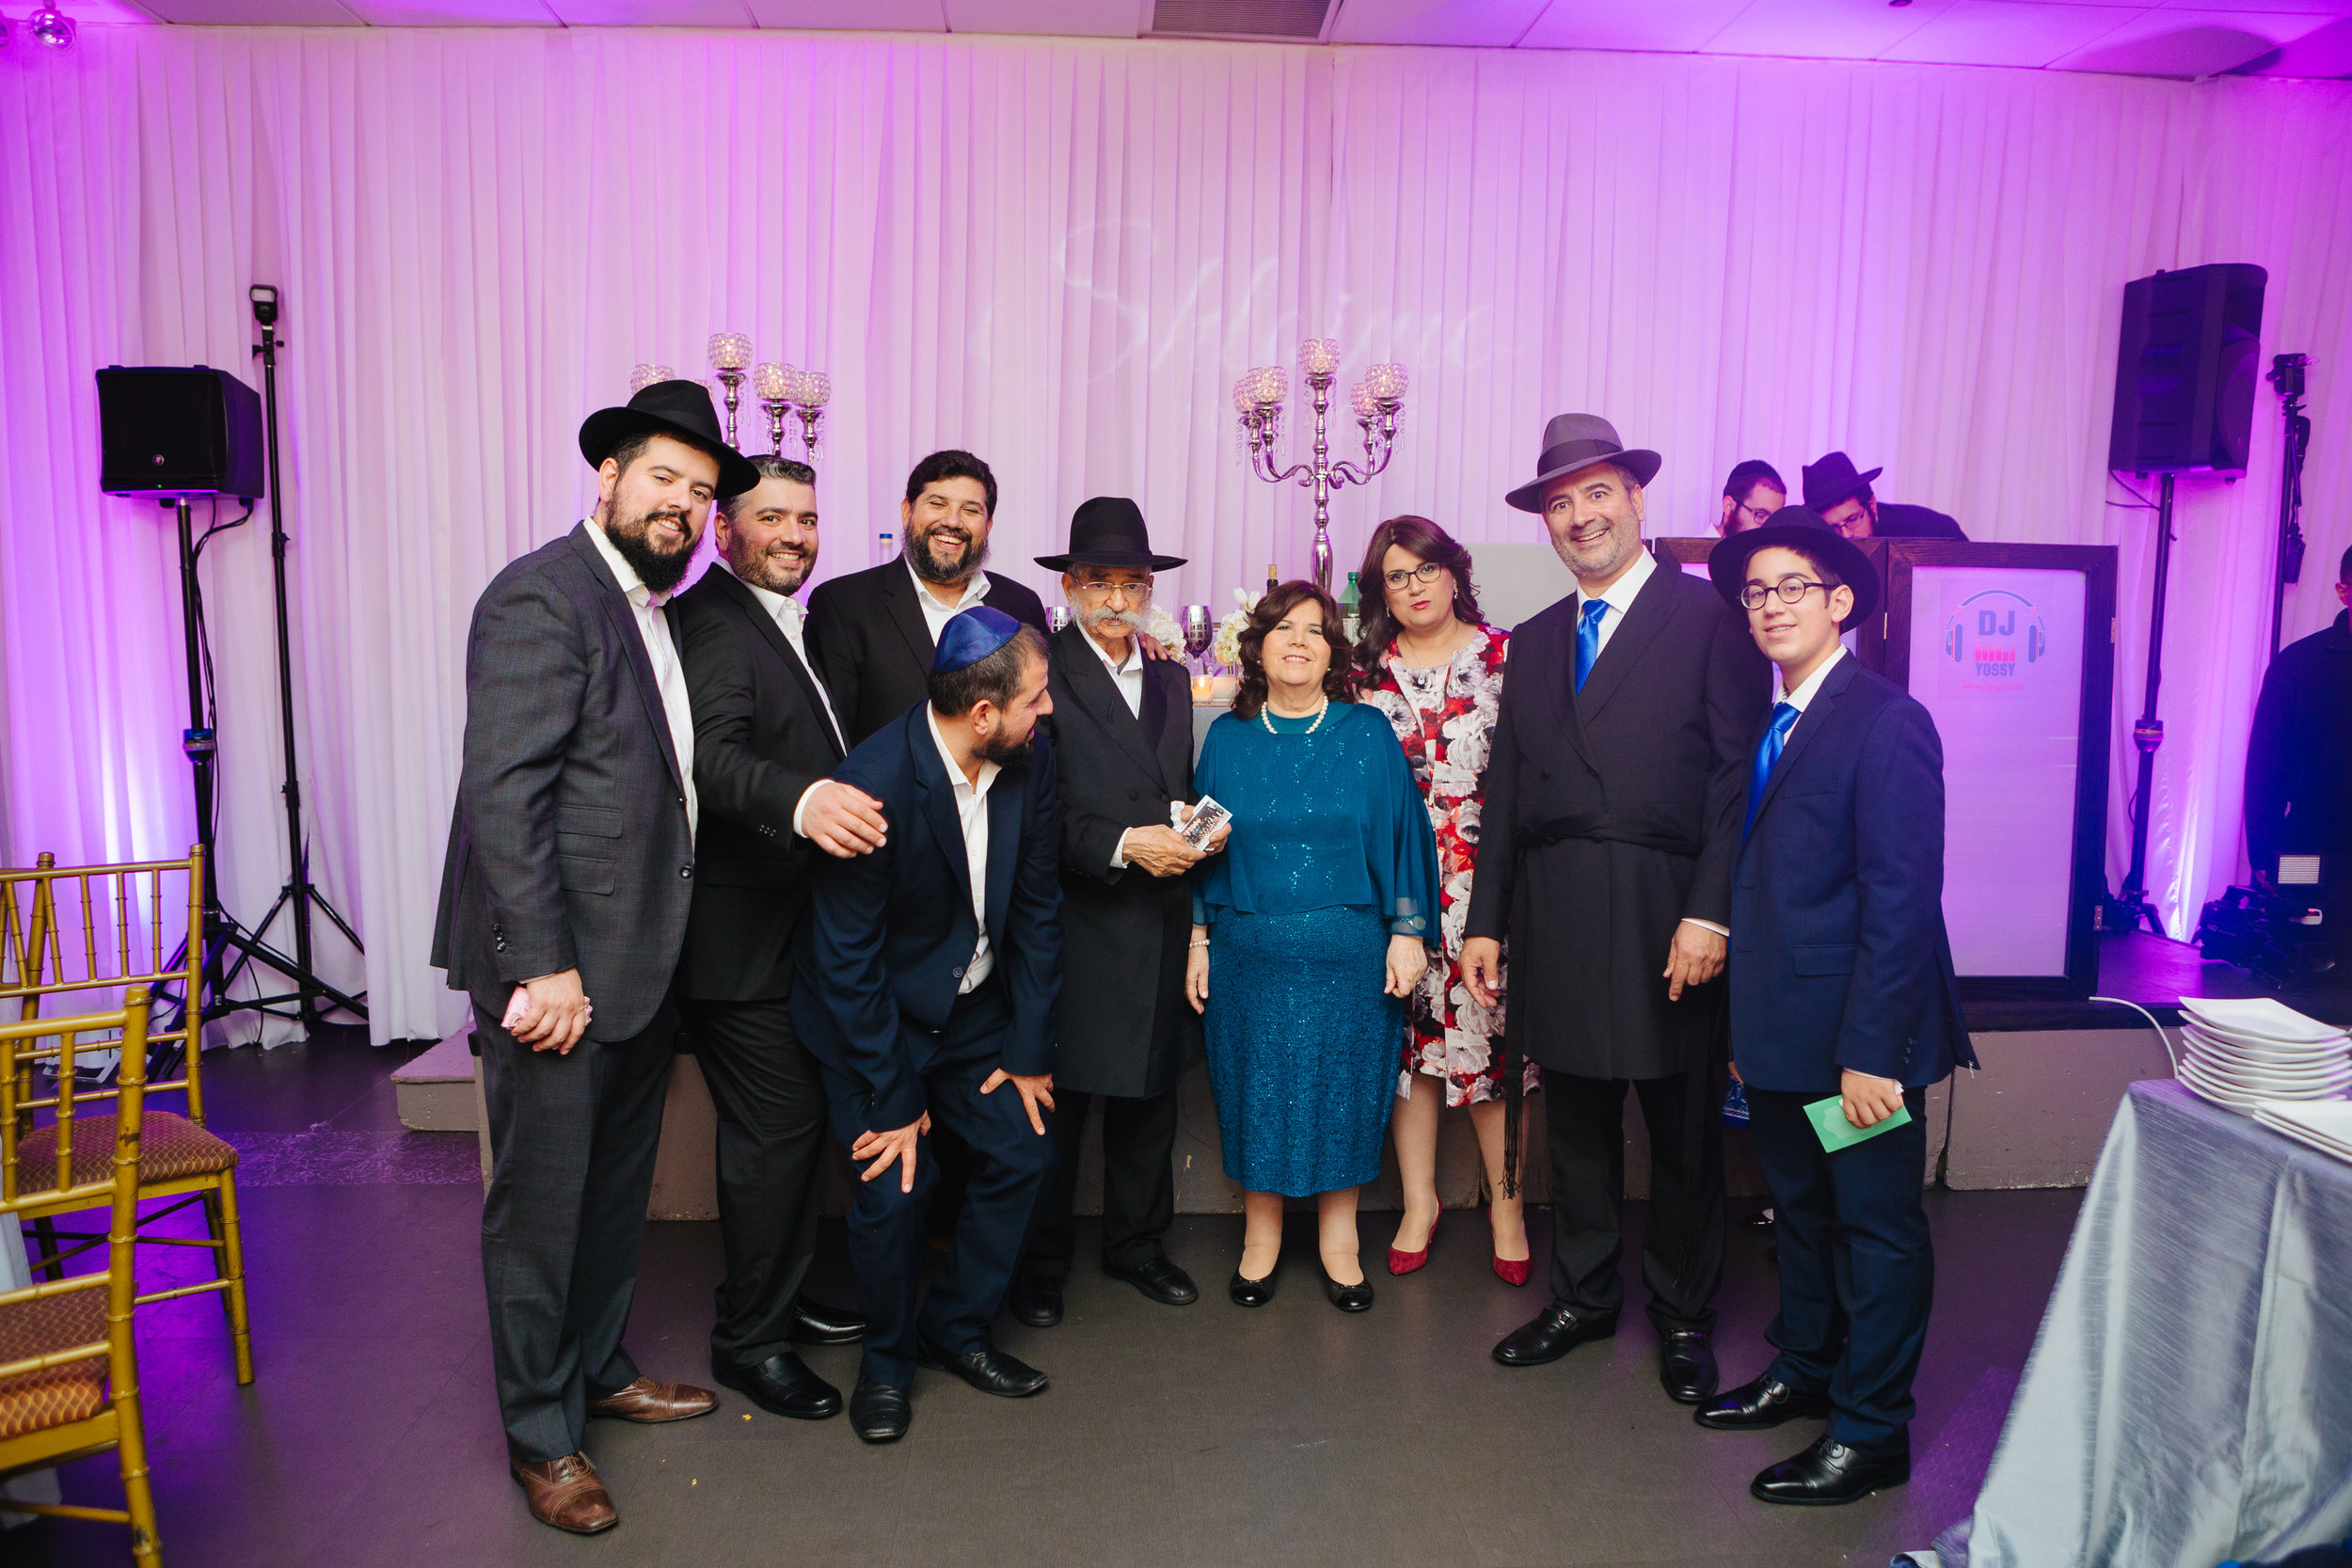 Shloime Dahan Bar Mitzvah - Eliau Piha studio photography-0203.jpg